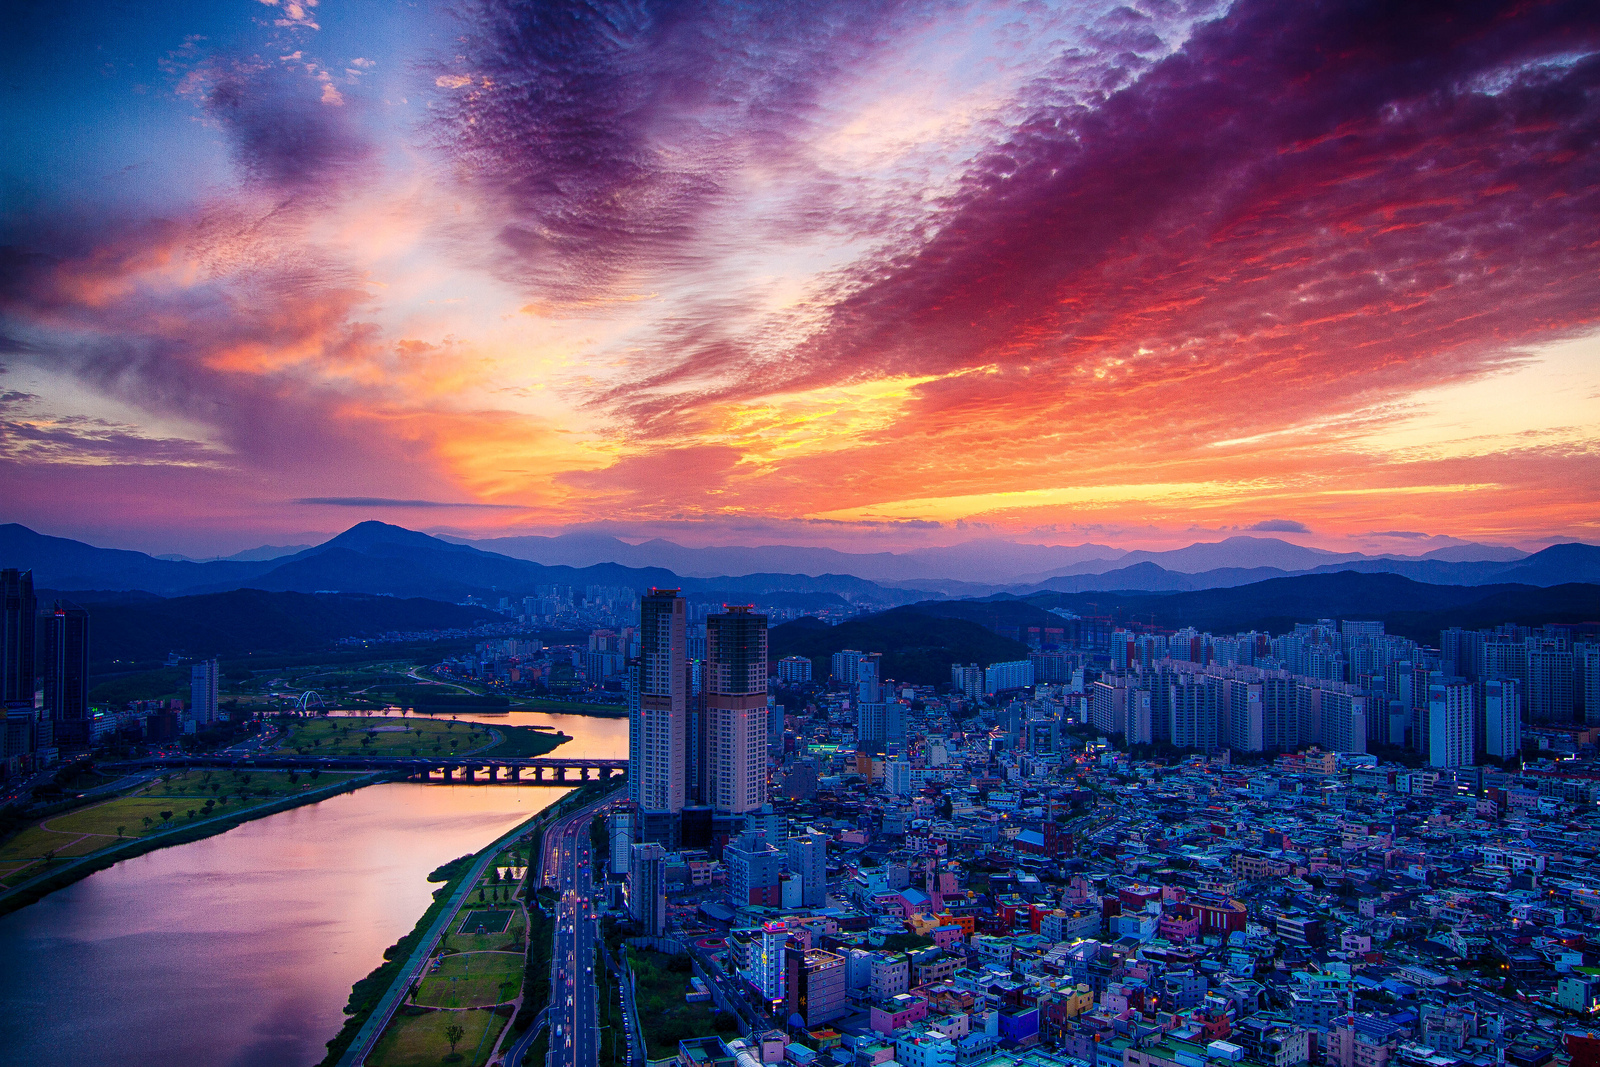 sunset over Ulsan South Korea with clouds and bright colours.